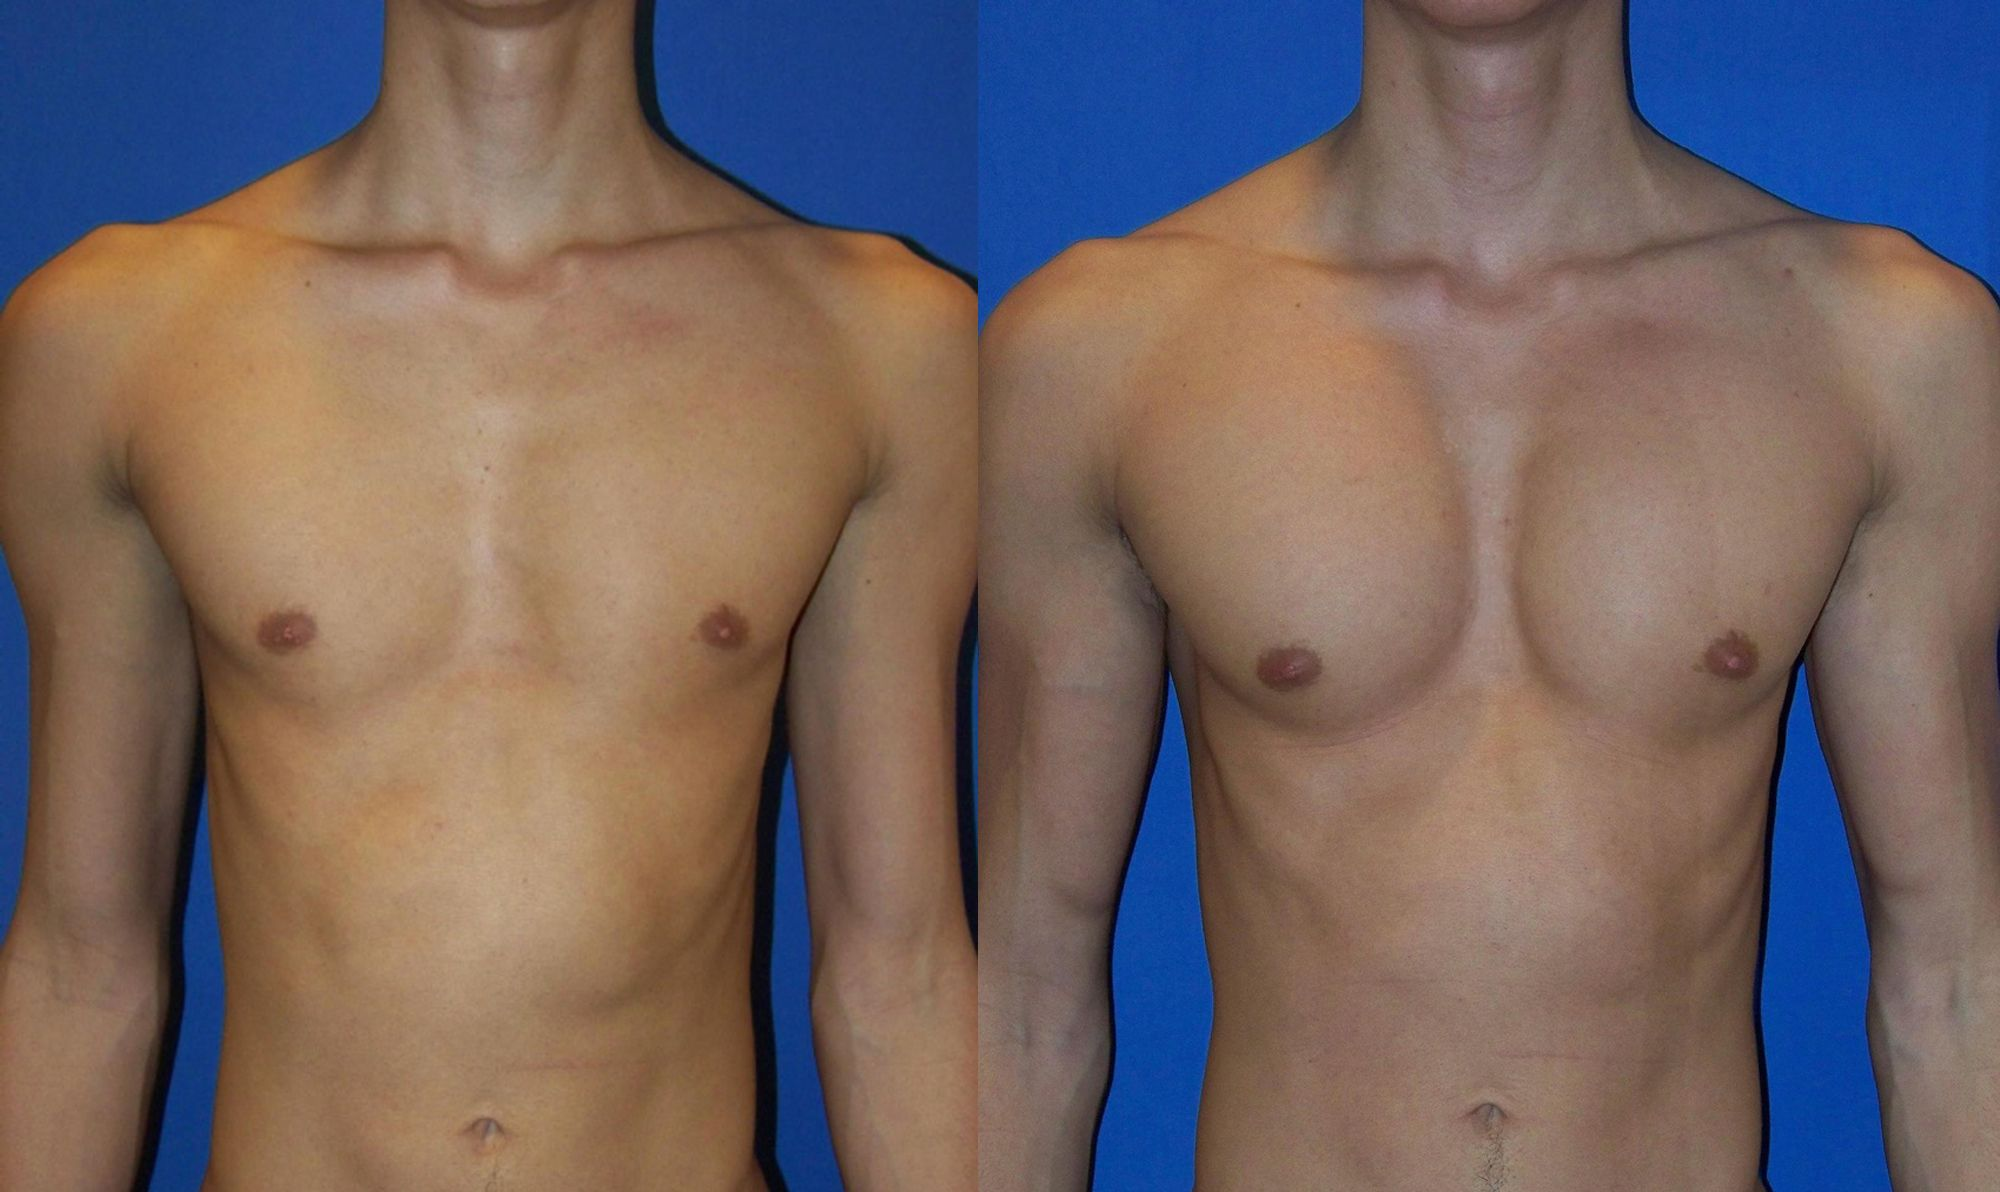 Pectoral prosthesis - Picture 6